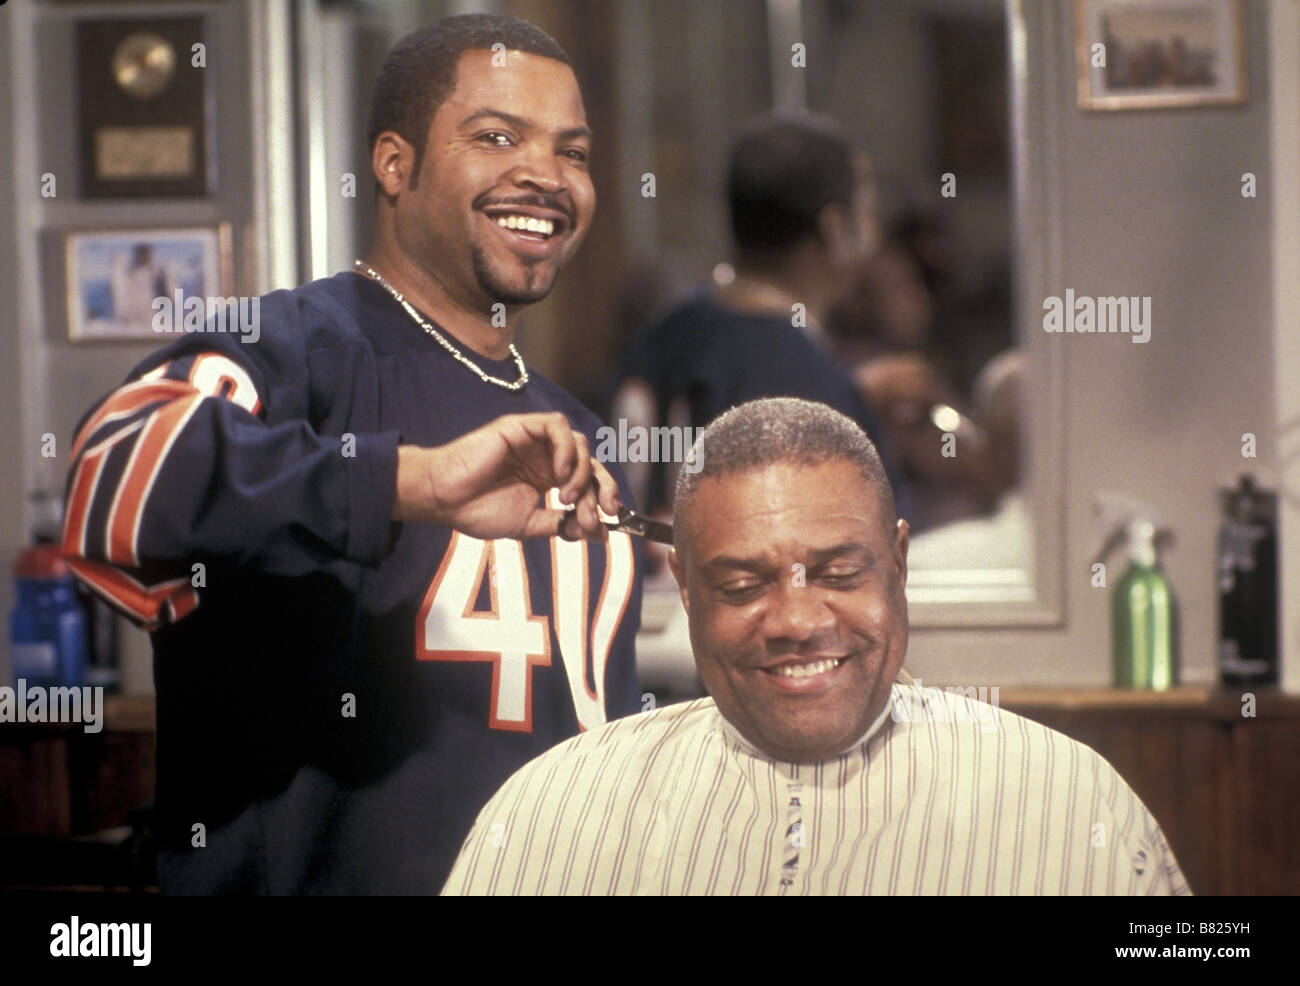 Ice Cube Barbershop Back In Stock Photos & Ice Cube Barbershop ...